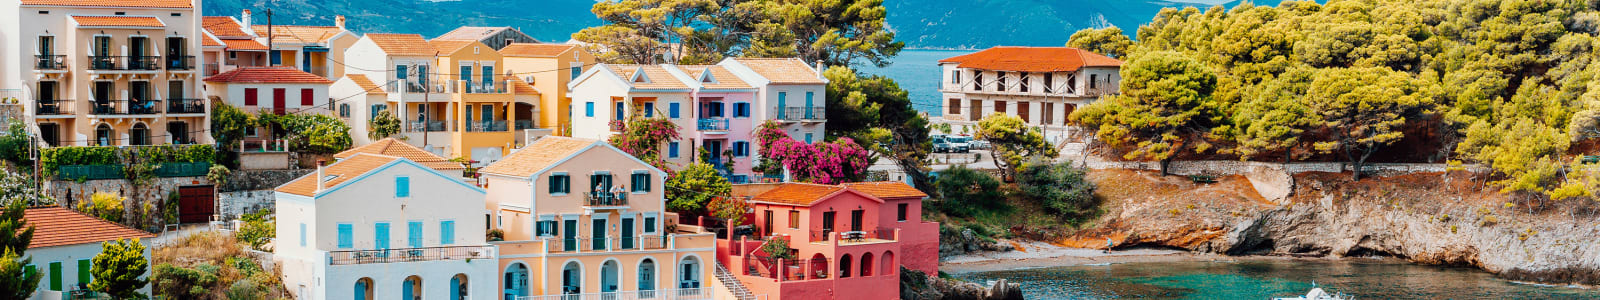 Serene bay in Kefalonia with bright buildings